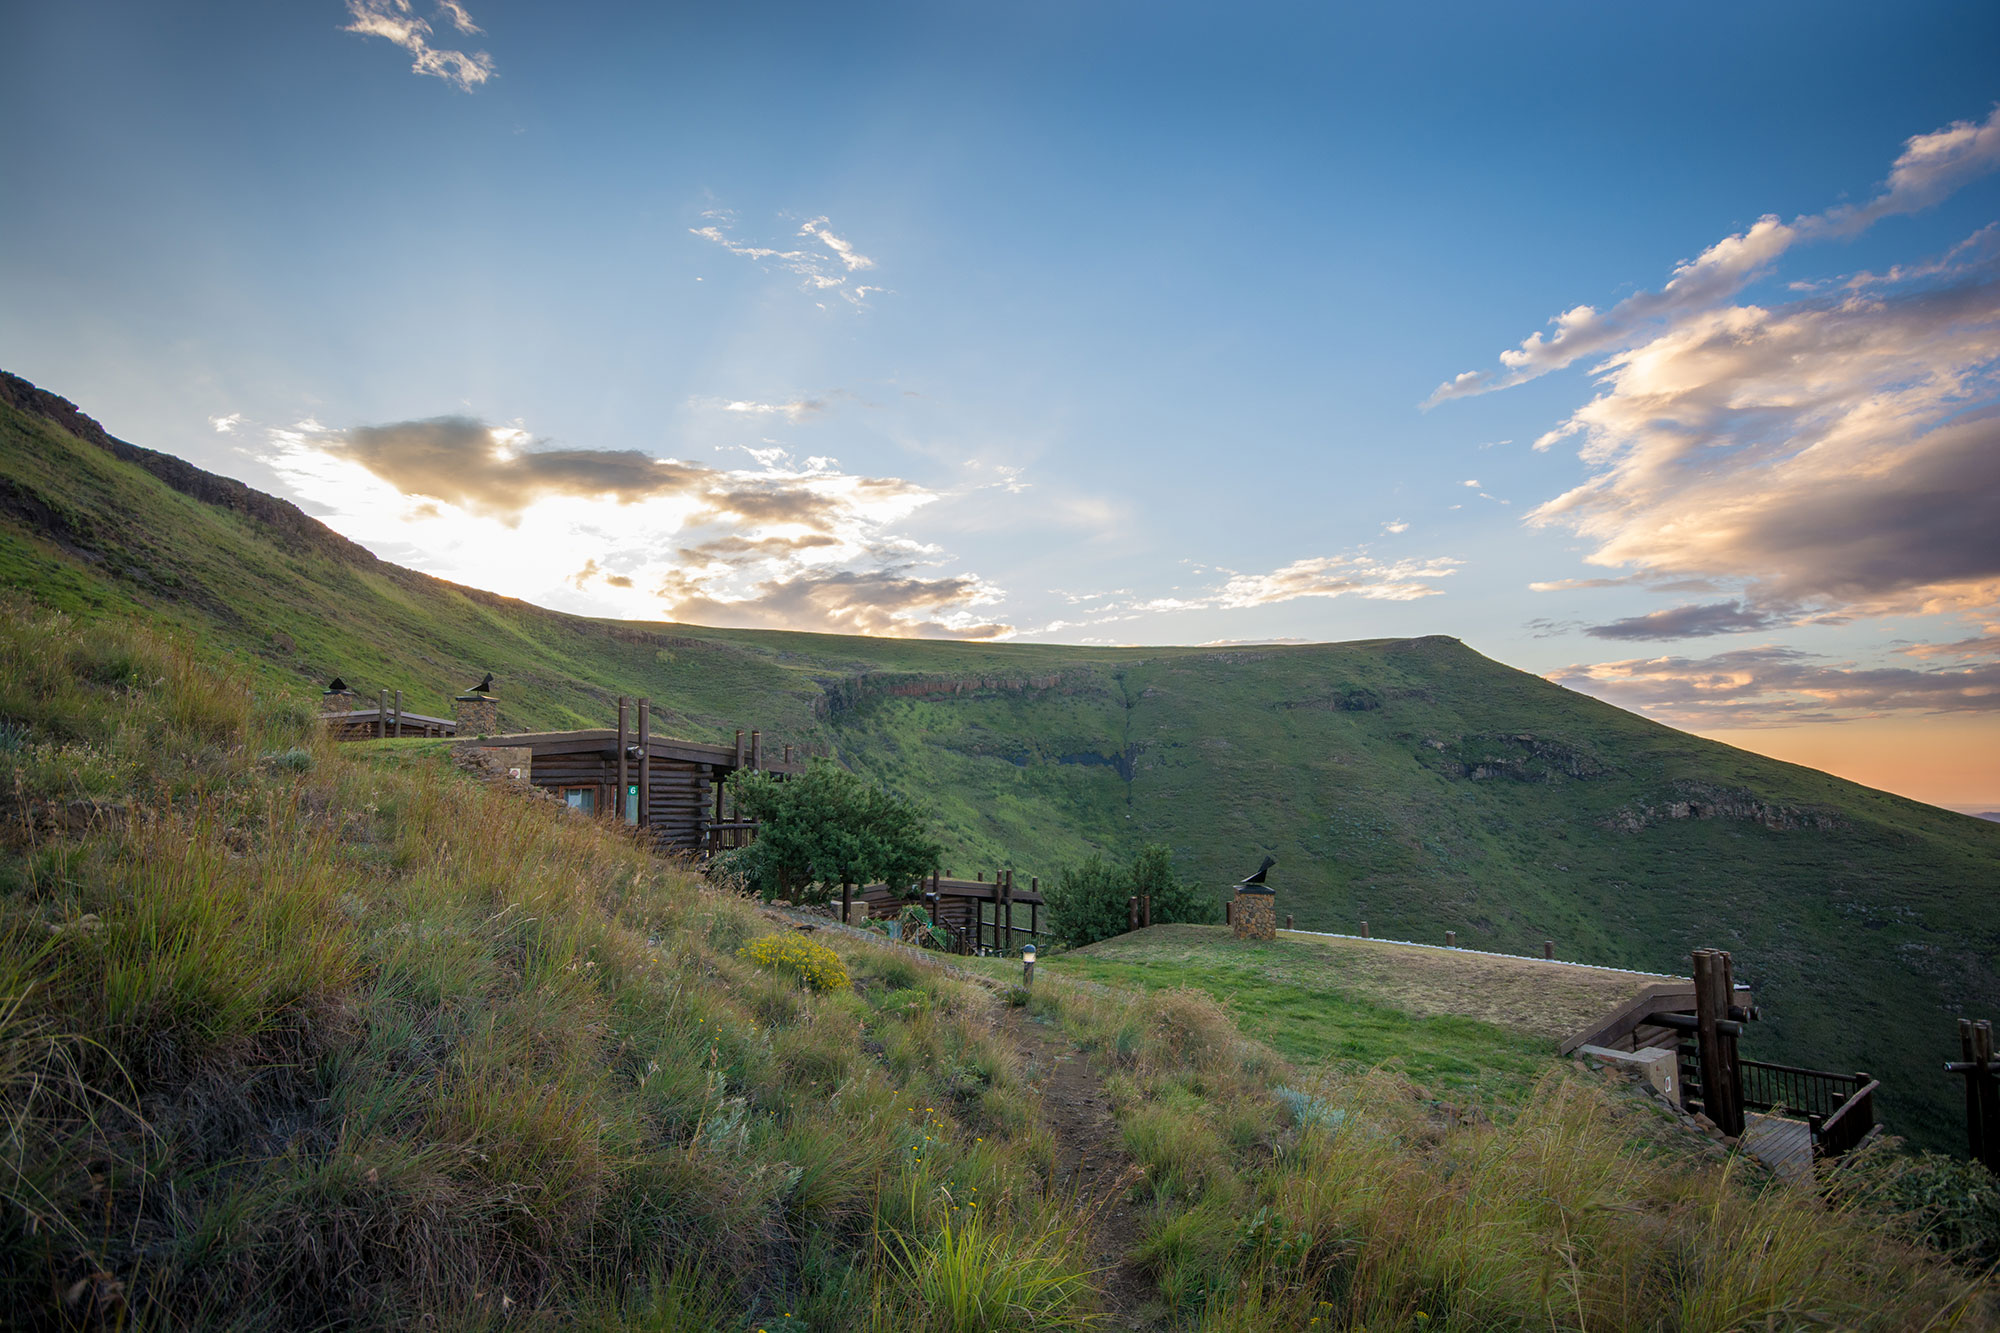 Discover true mountain magic at Golden Gate National Park